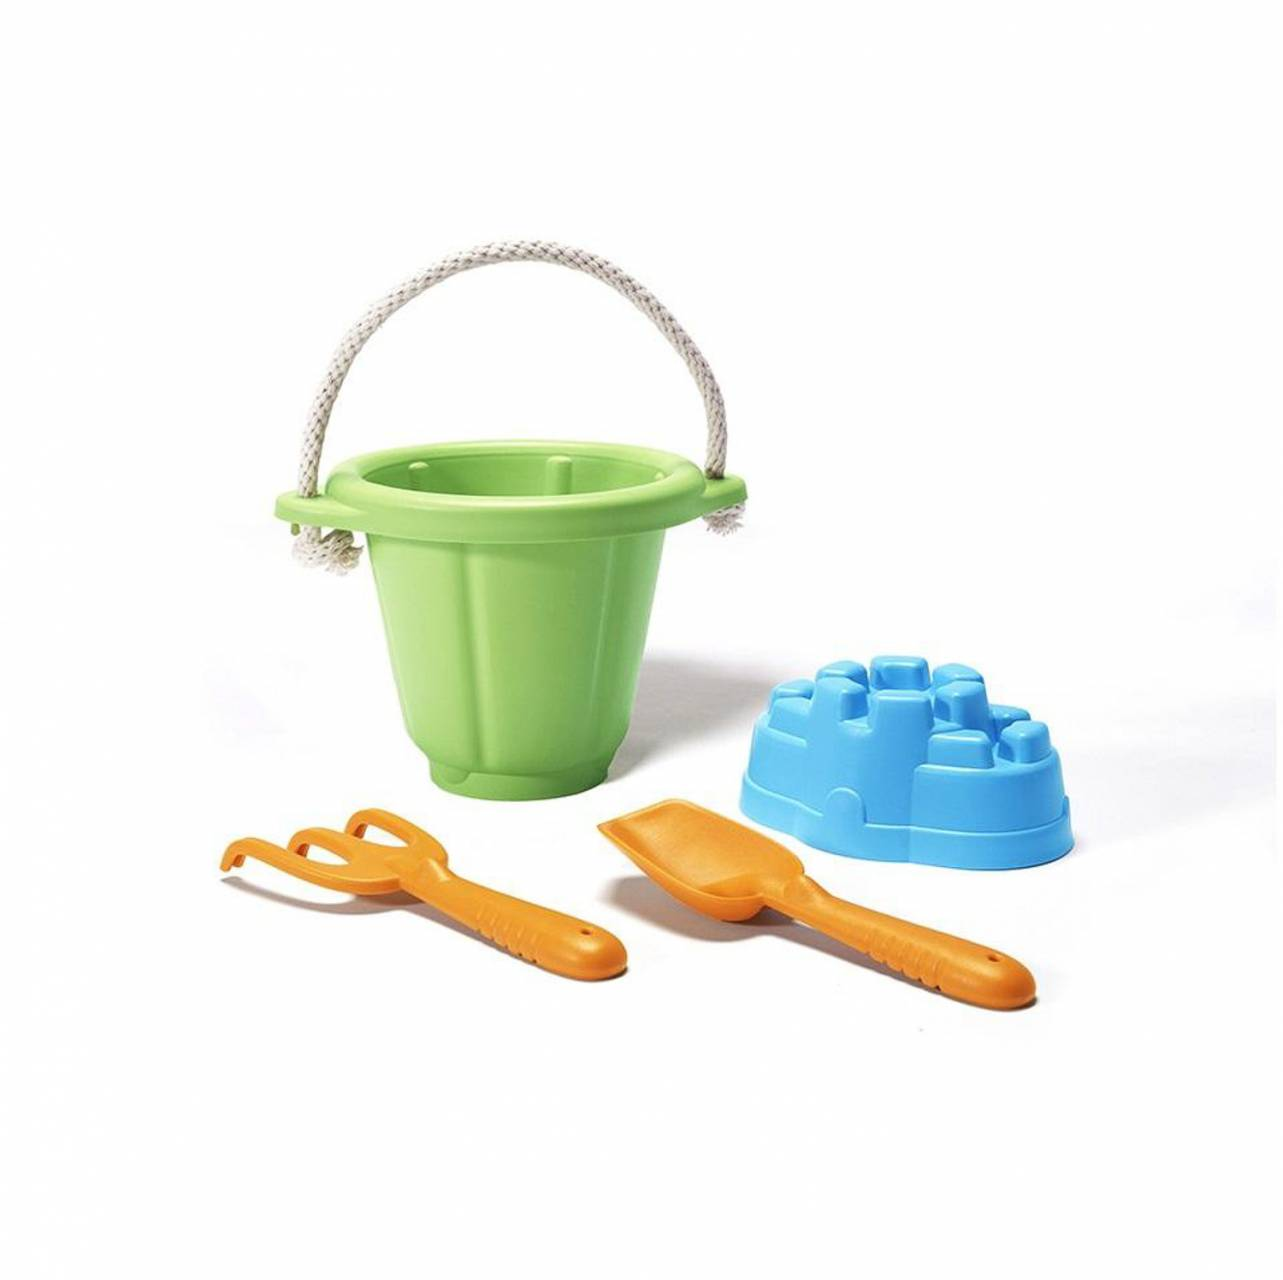 The Green Toys brand sets the standard for eco-friendly toys!